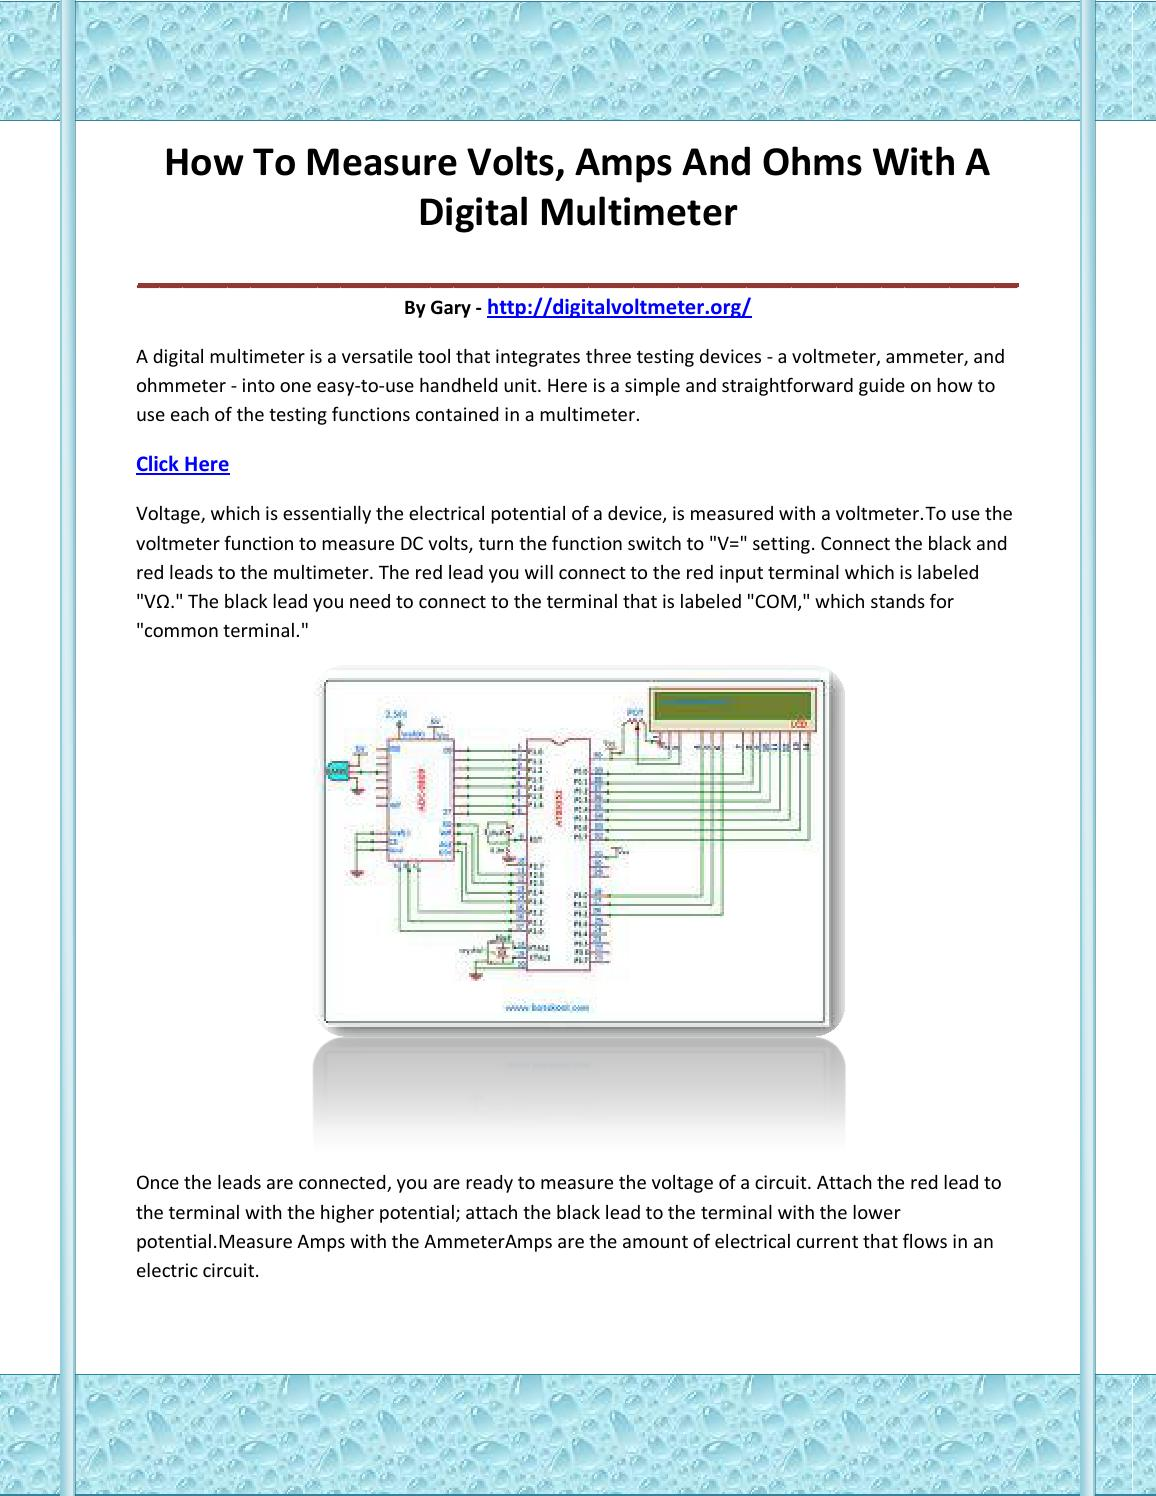 Digital Voltmeter By Vdvasbiuf Issuu Related Image With Circuit